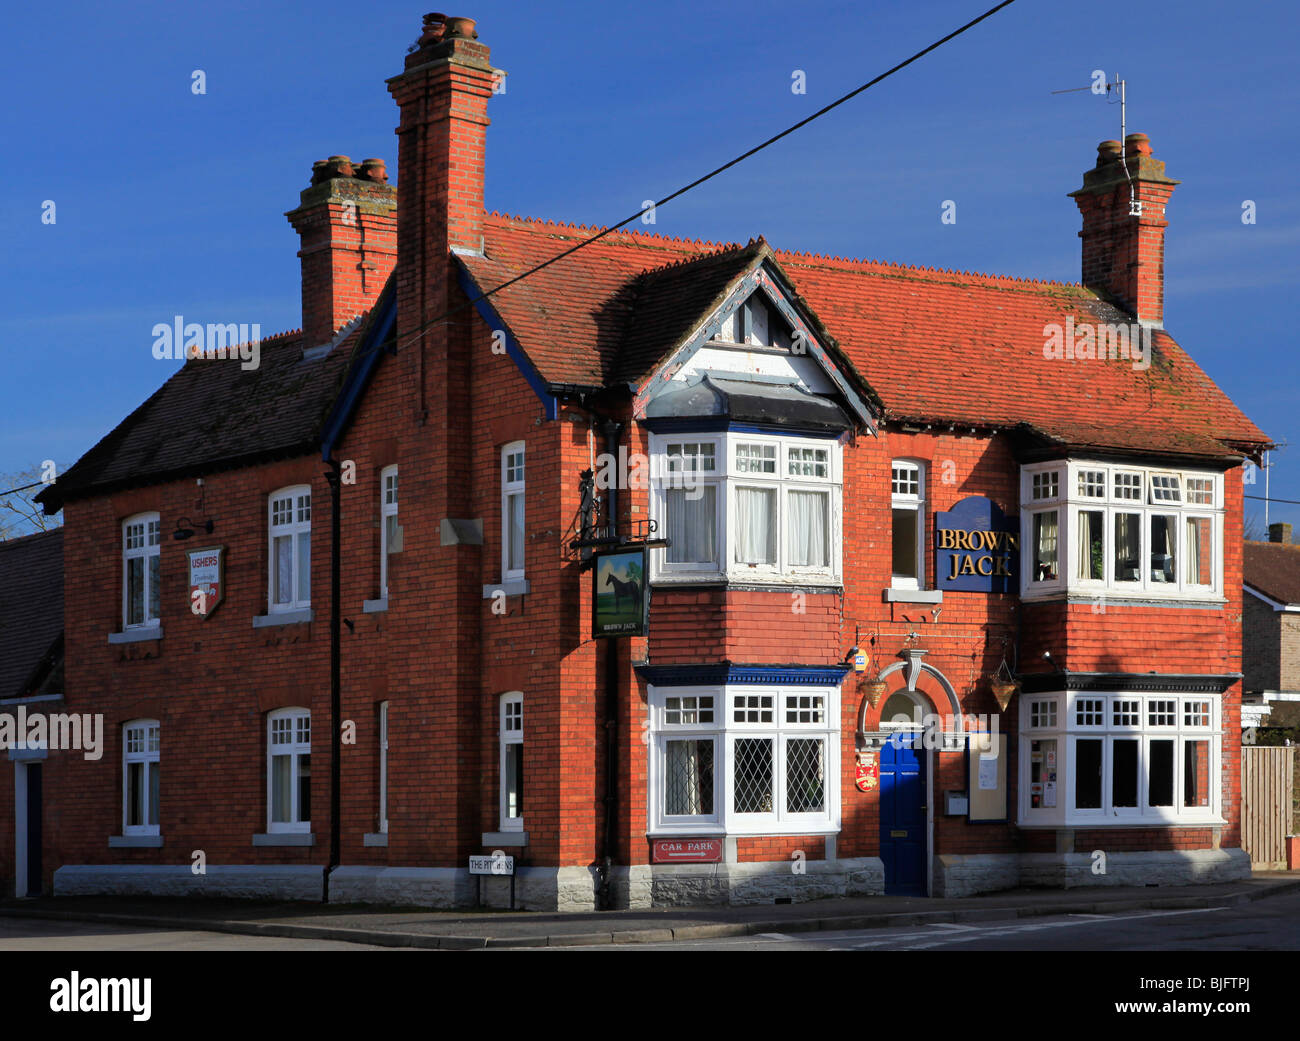 Brown Jack pub a typical Victorian red brick building in the Wiltshire village of Wroughton - Stock Image